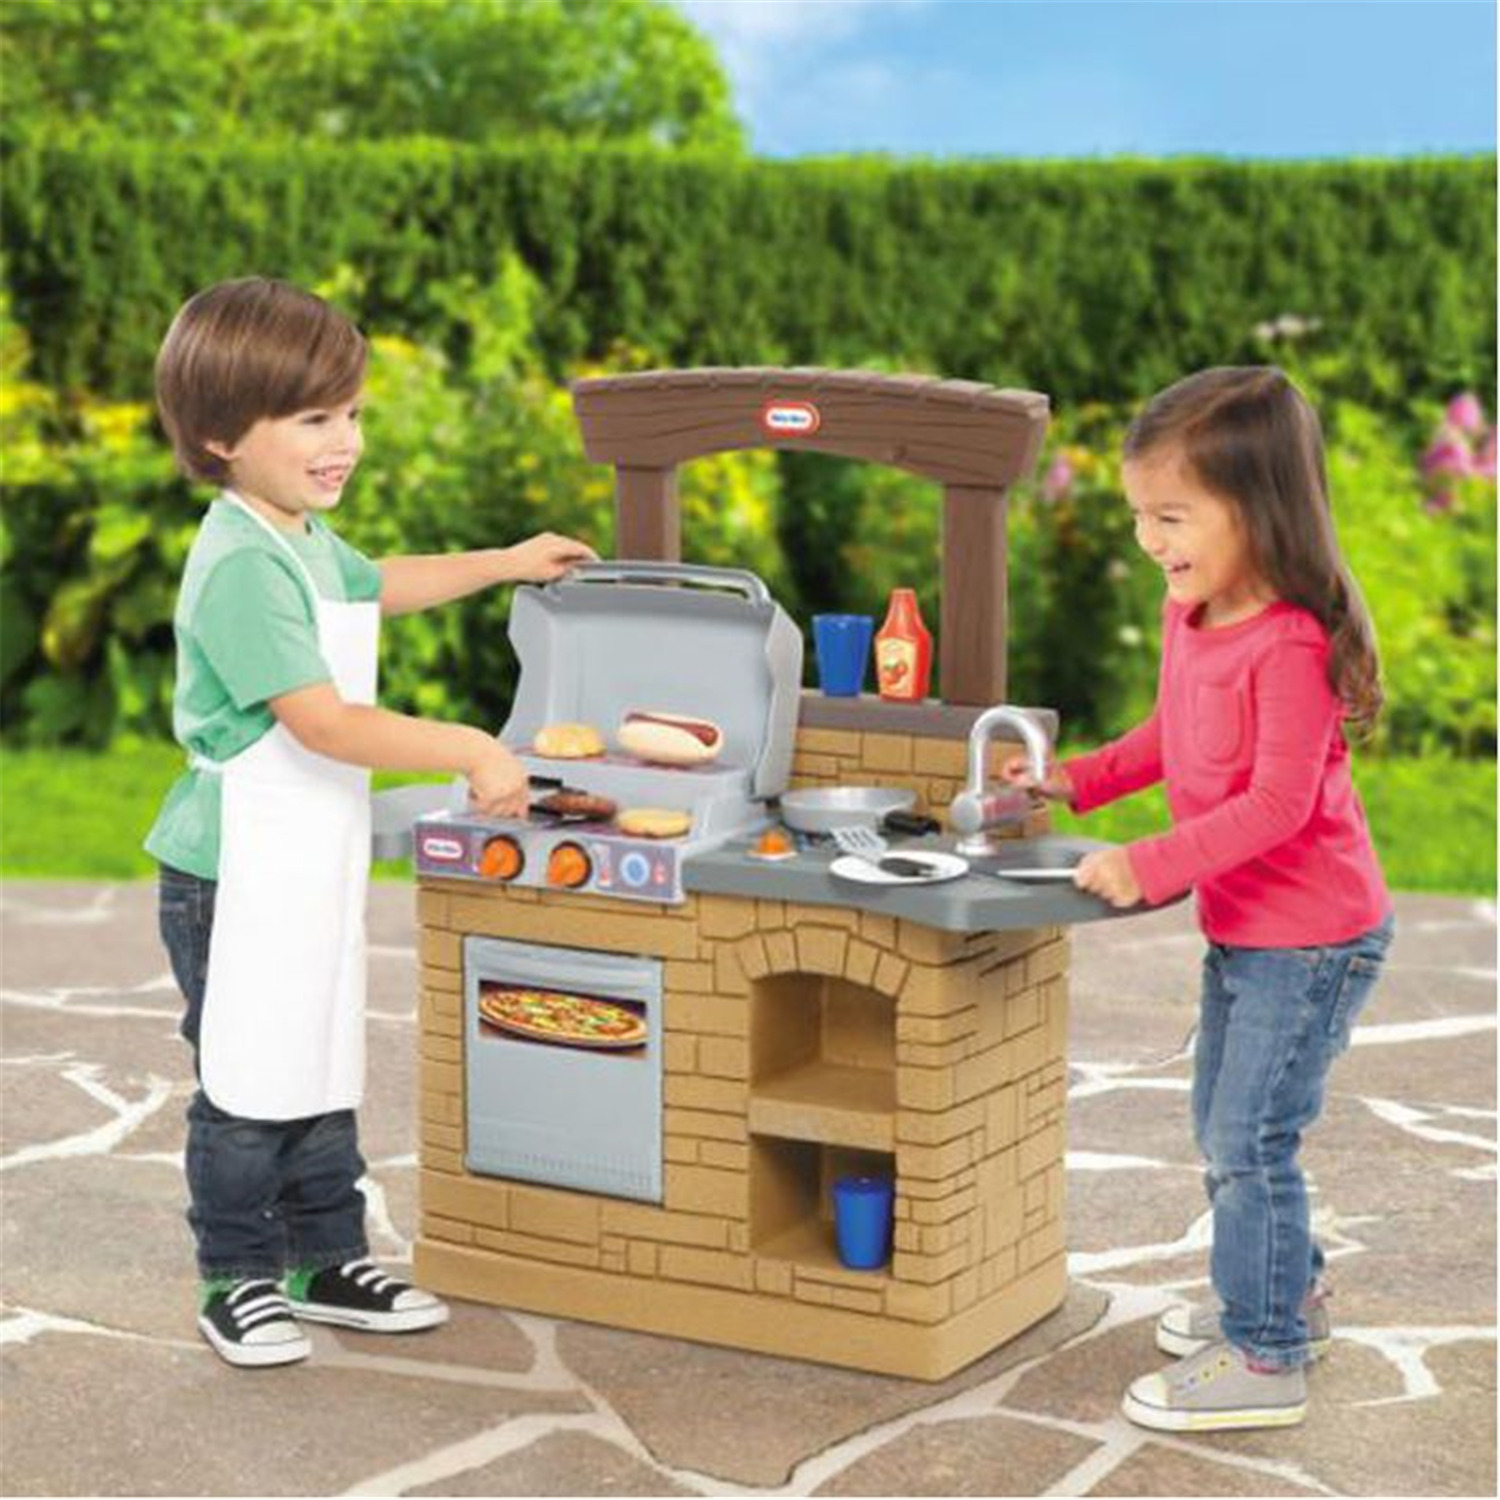 Furniture home goods appliances athletic gear fitness for Home goods outdoor kitchen